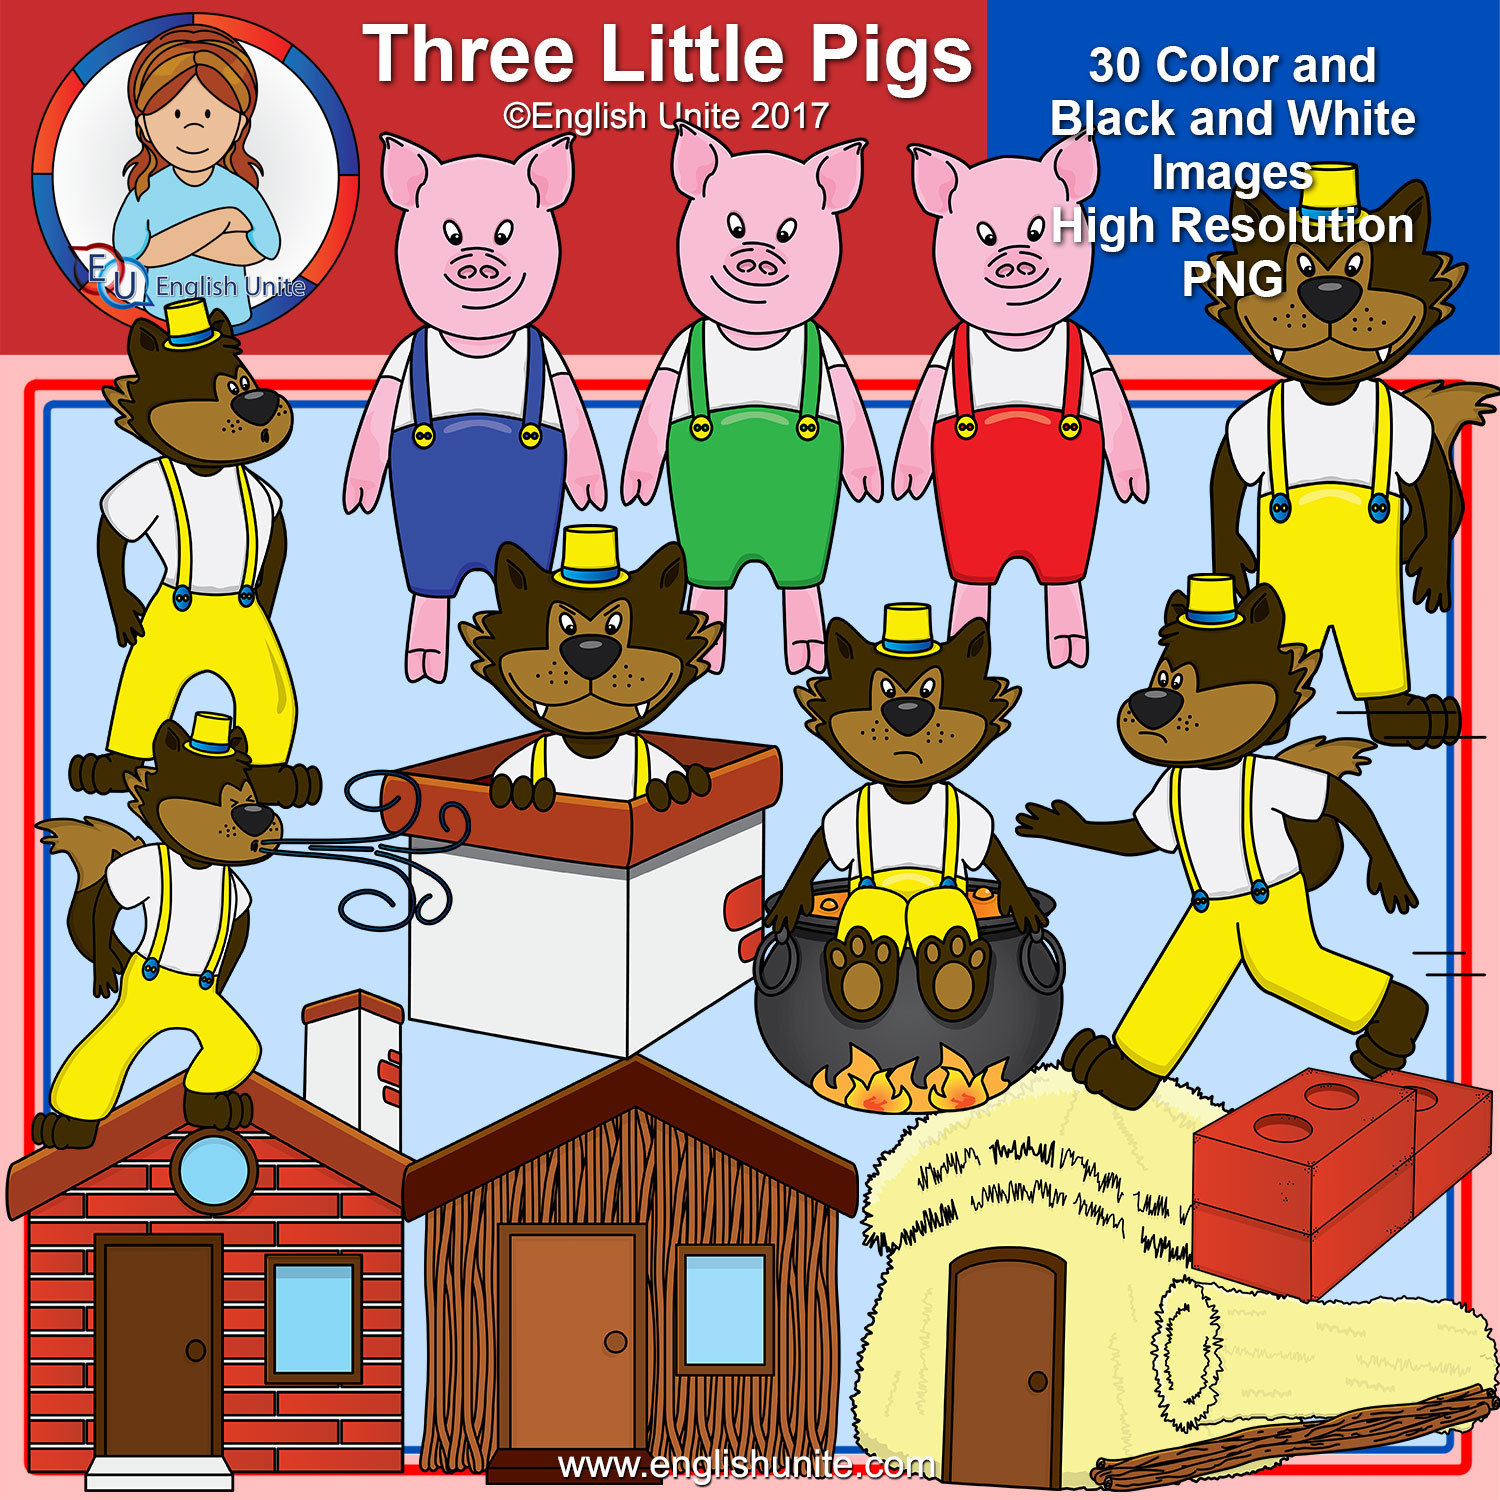 Three little pigs clipart image Clip Art - The Three Little Pigs image